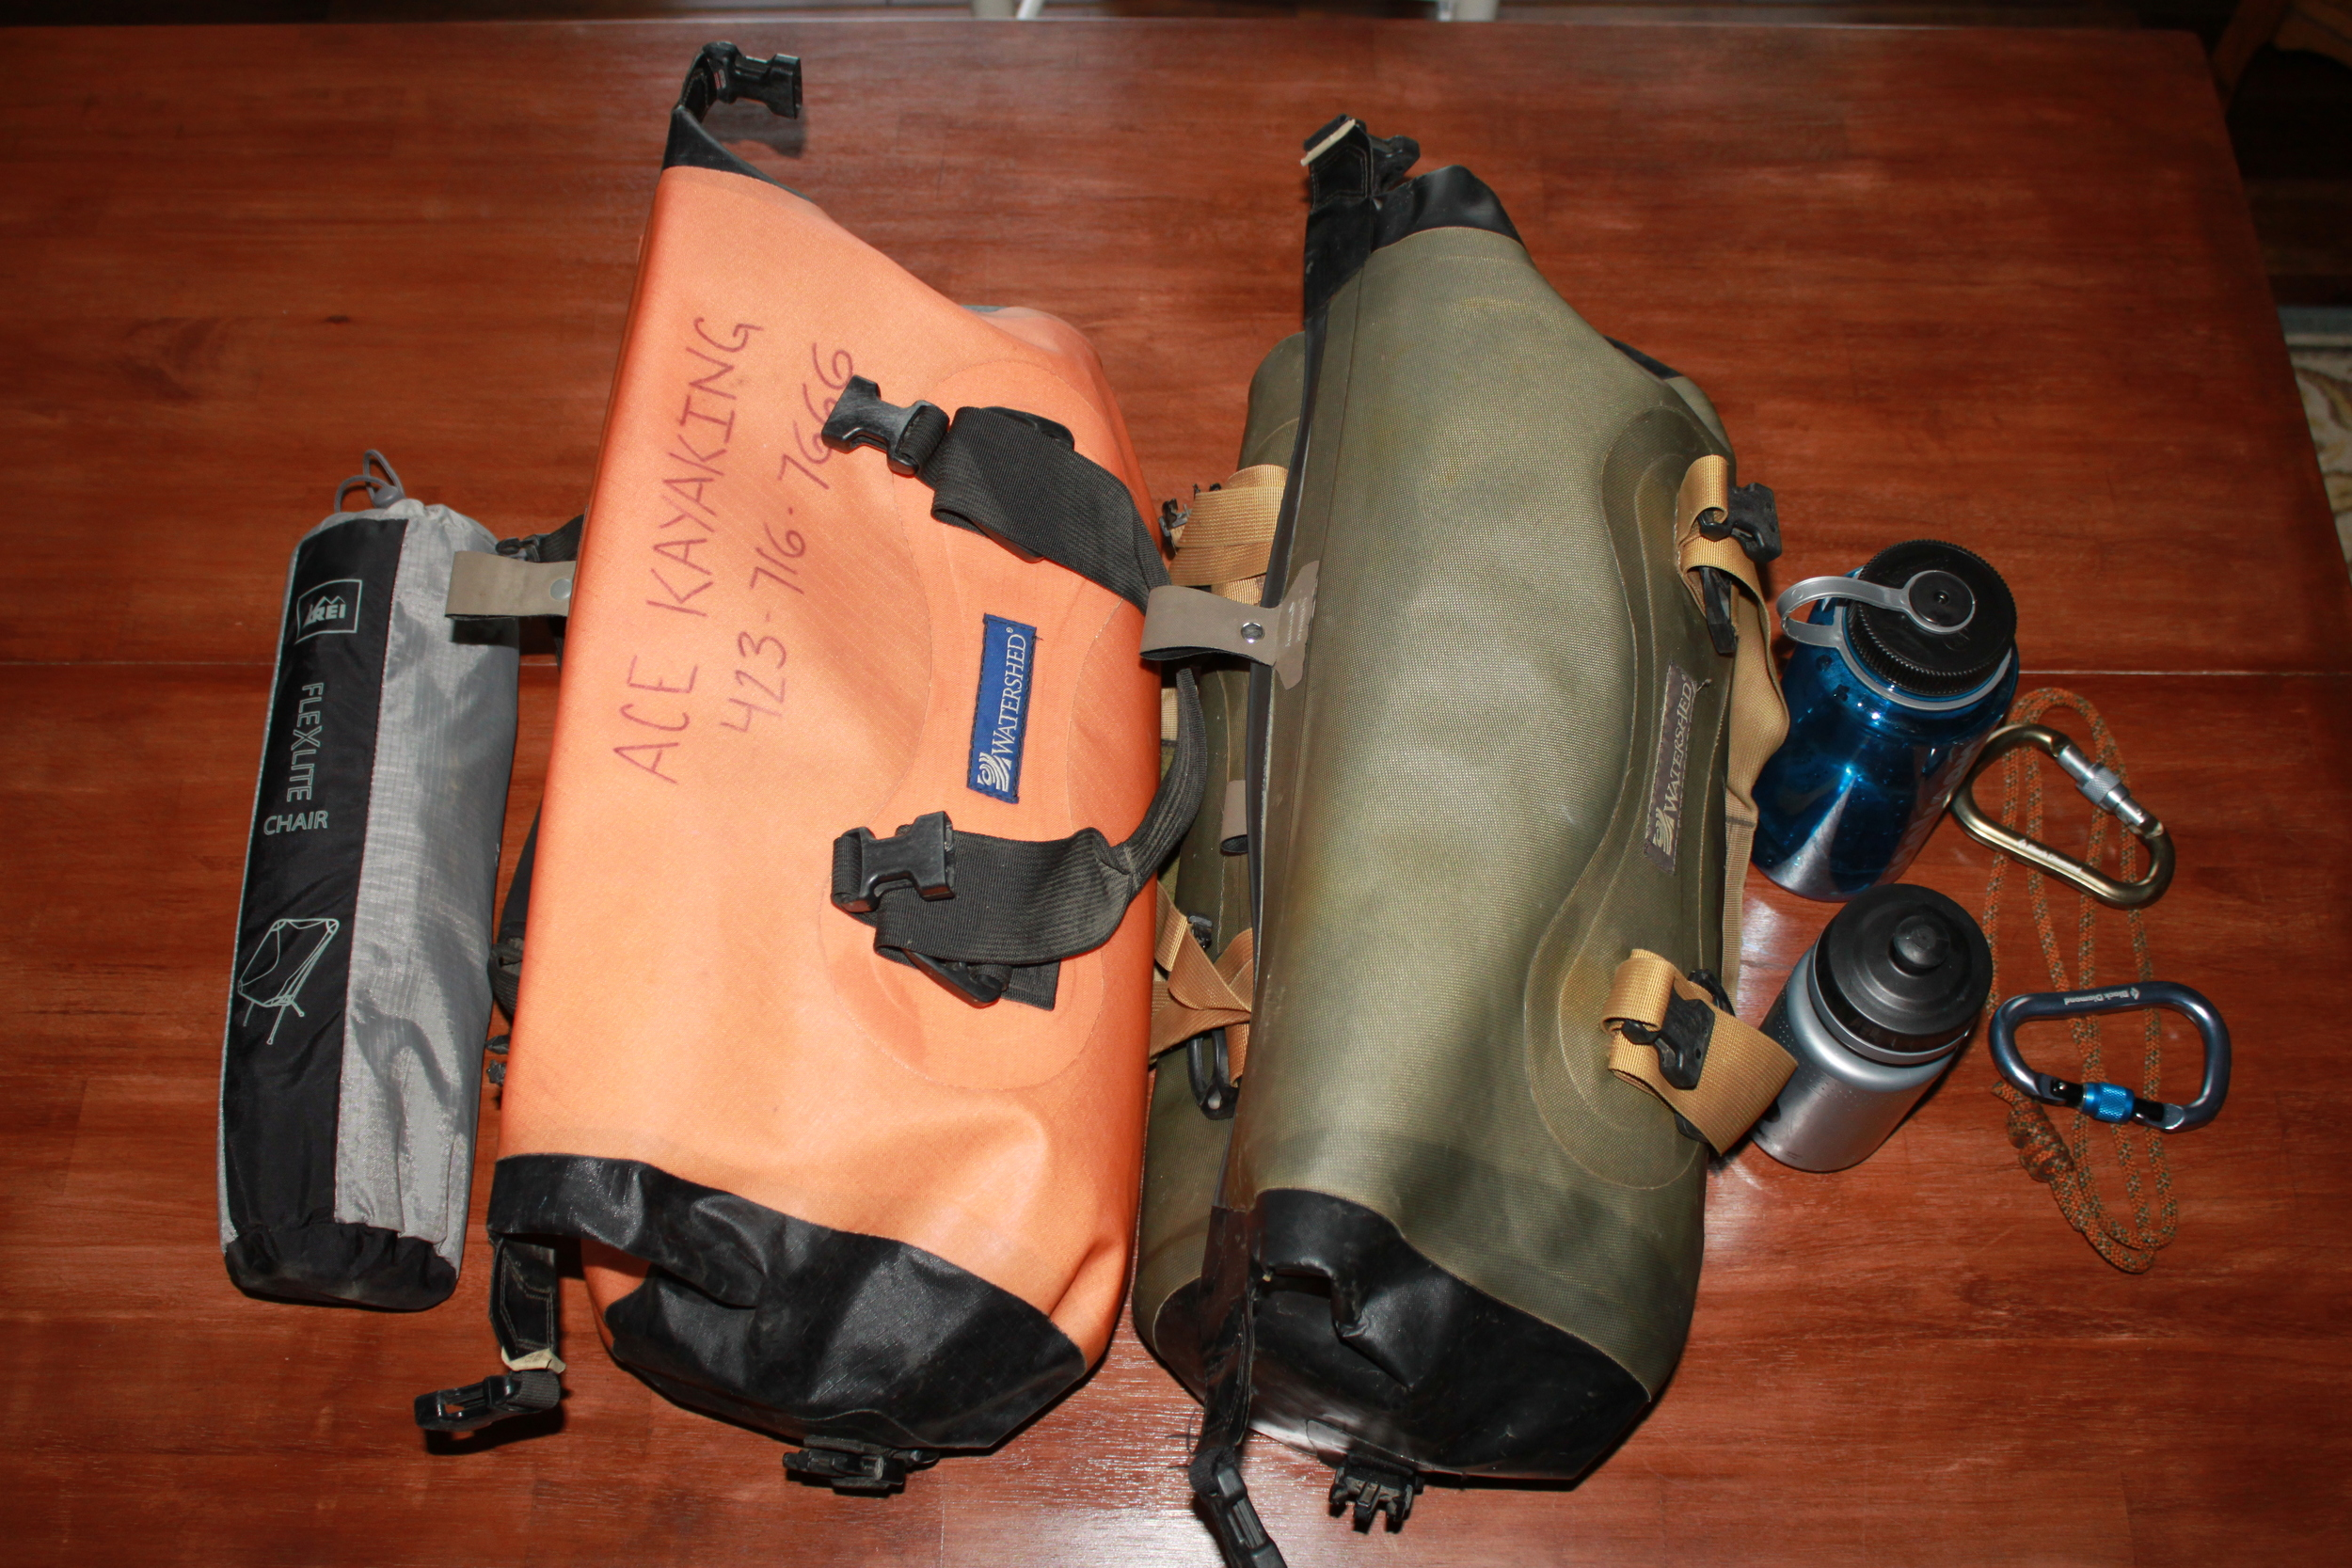 This is my base-level winter kit. Two Chattooga drybags, plus water bottles, and my luxuriant chair!